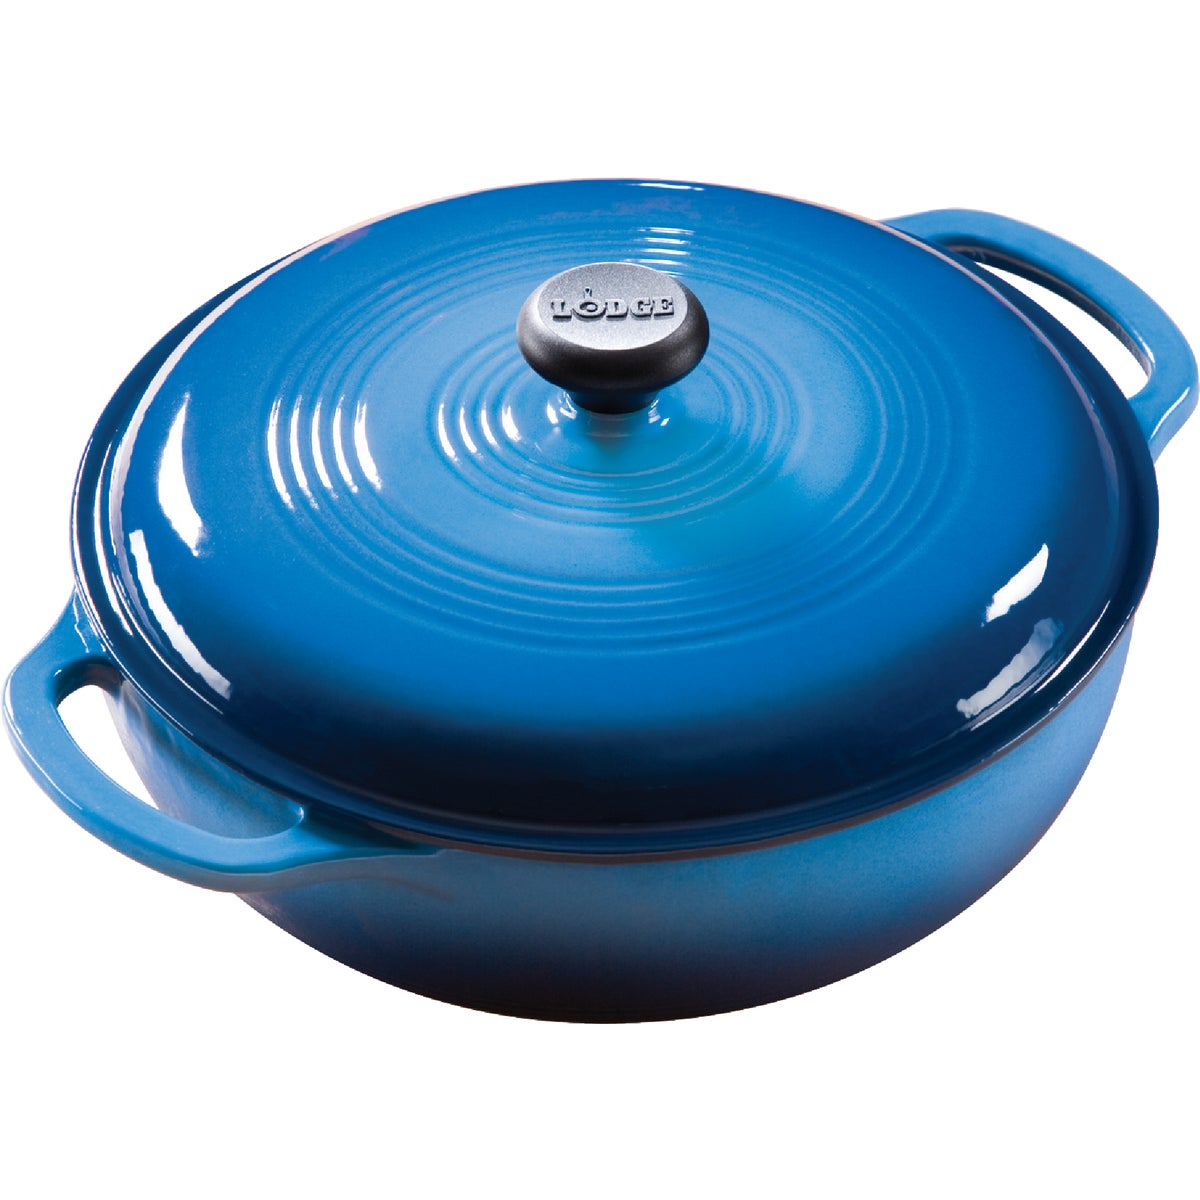 3QT BLUE DUTCH OVEN - EC3D33 by Lodge Mfg Co